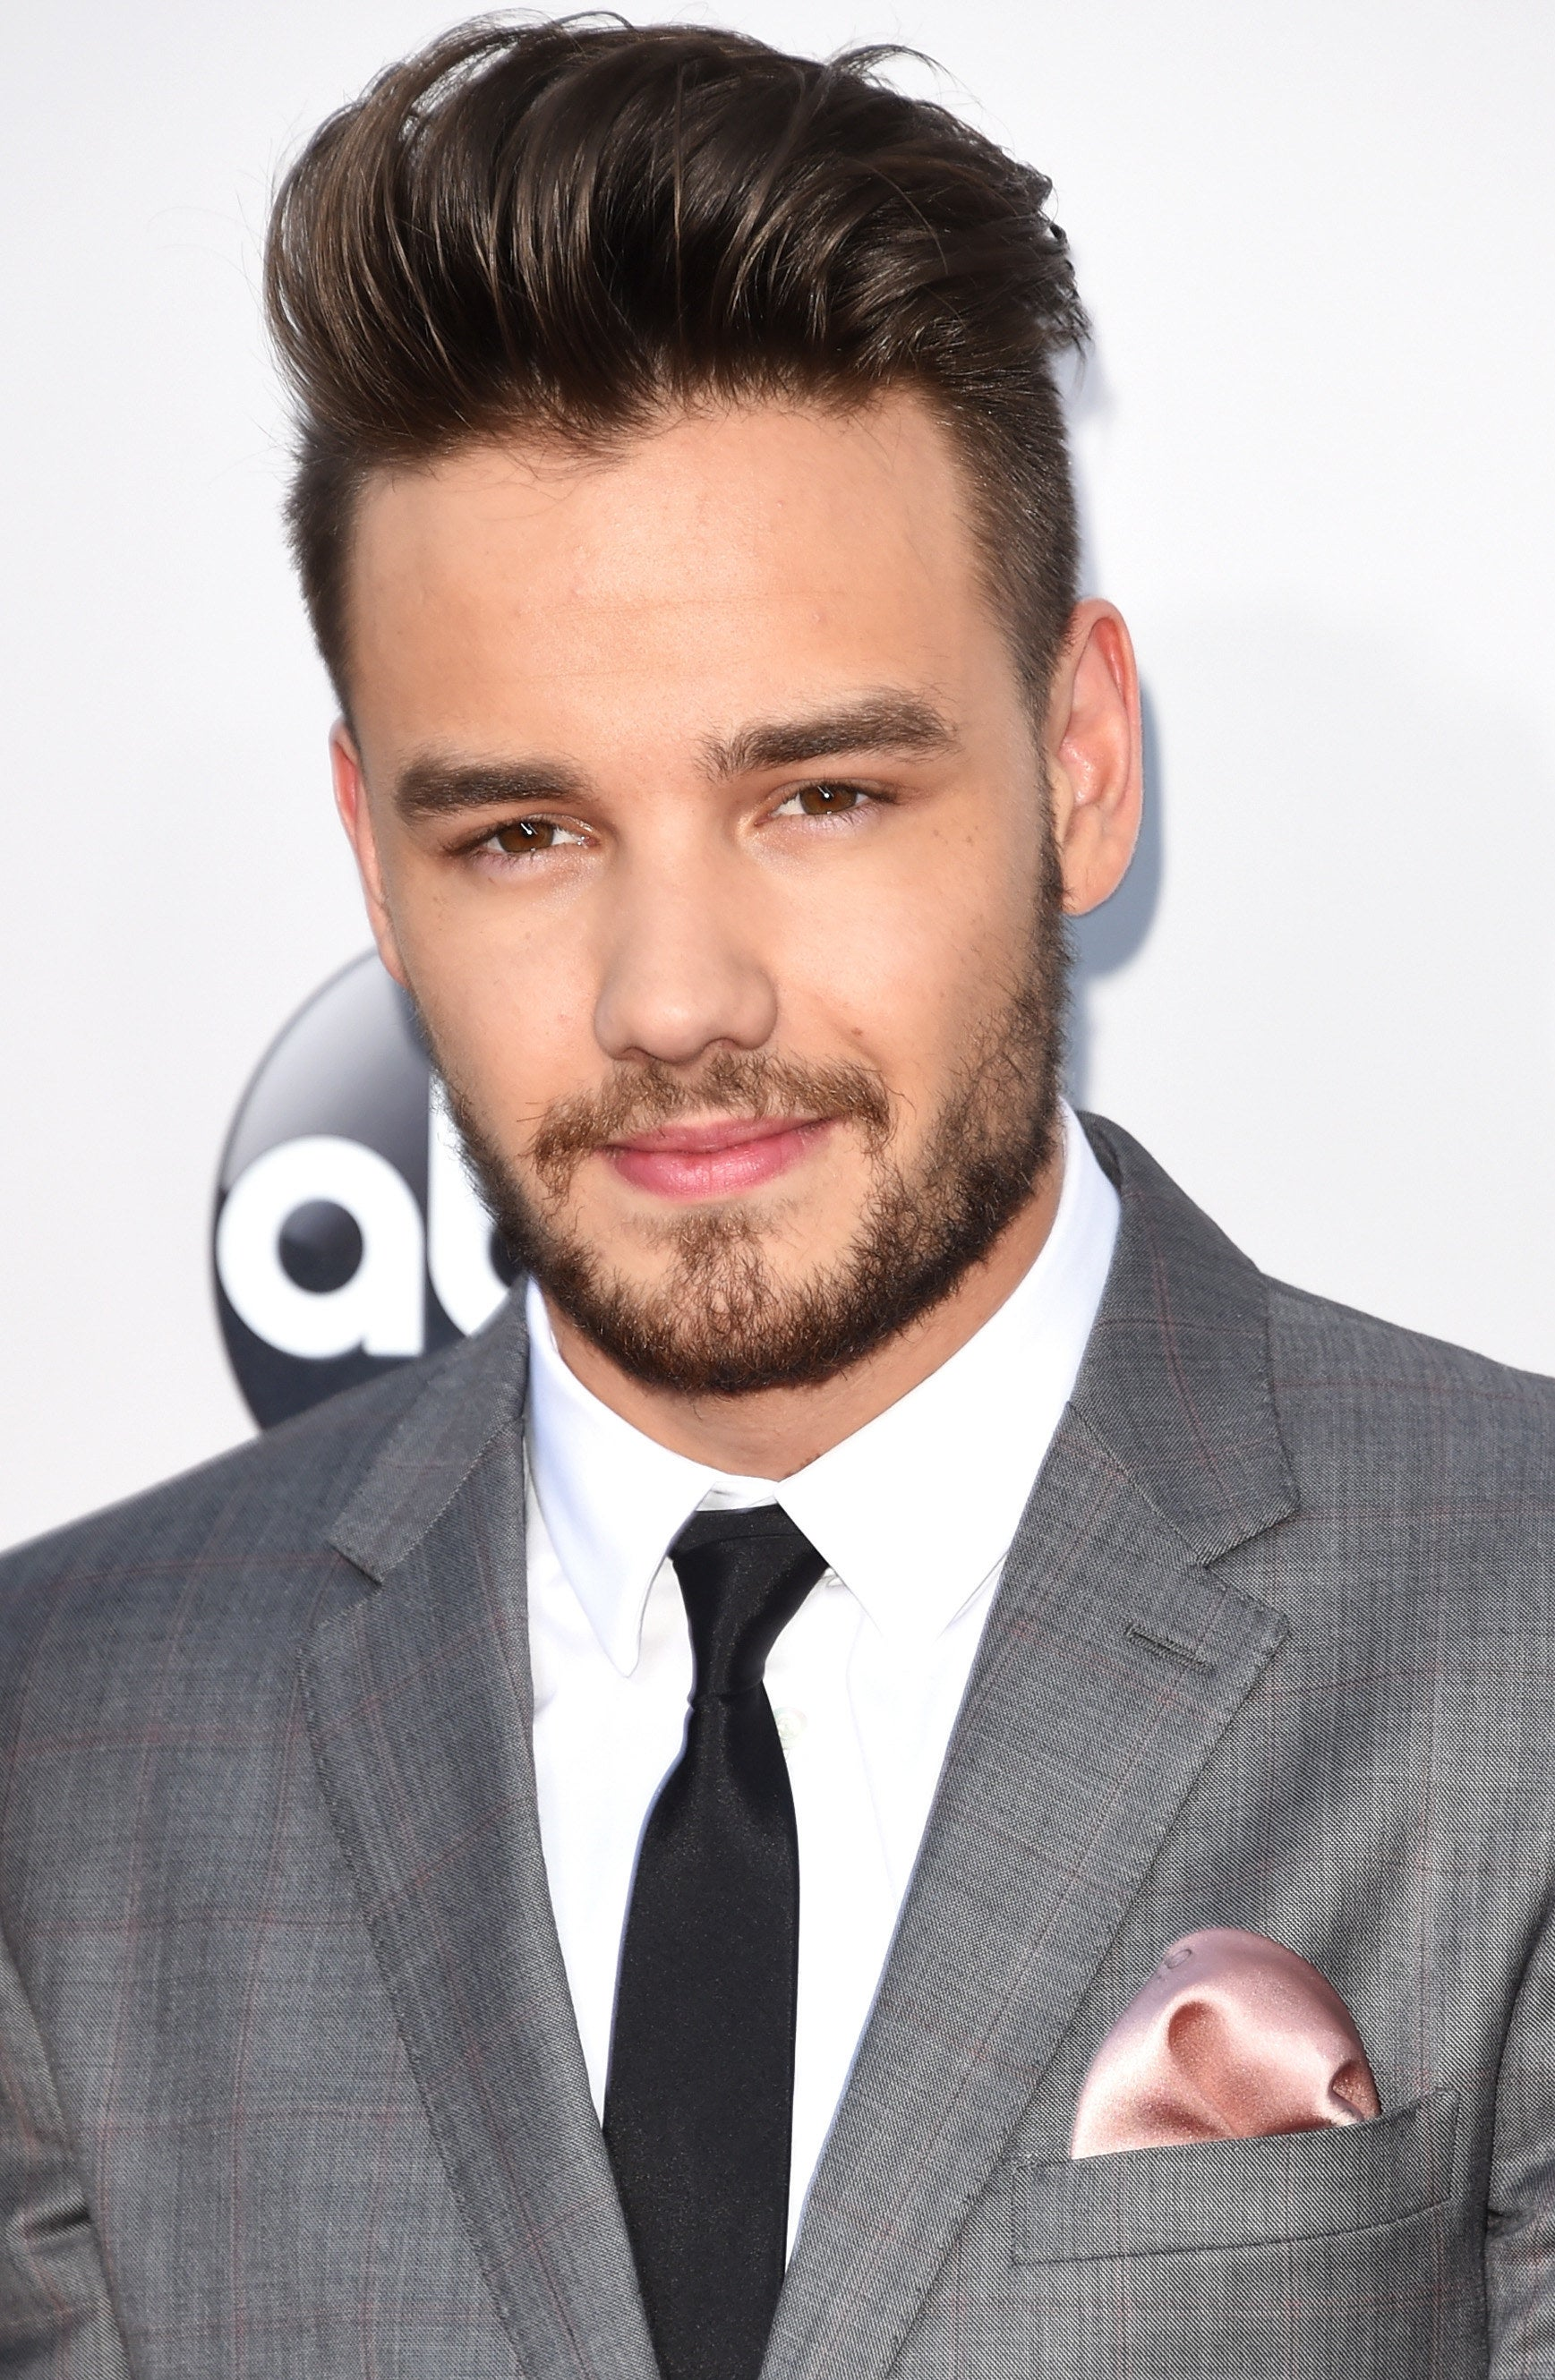 Liam Payne at the American Music Awards in 2015